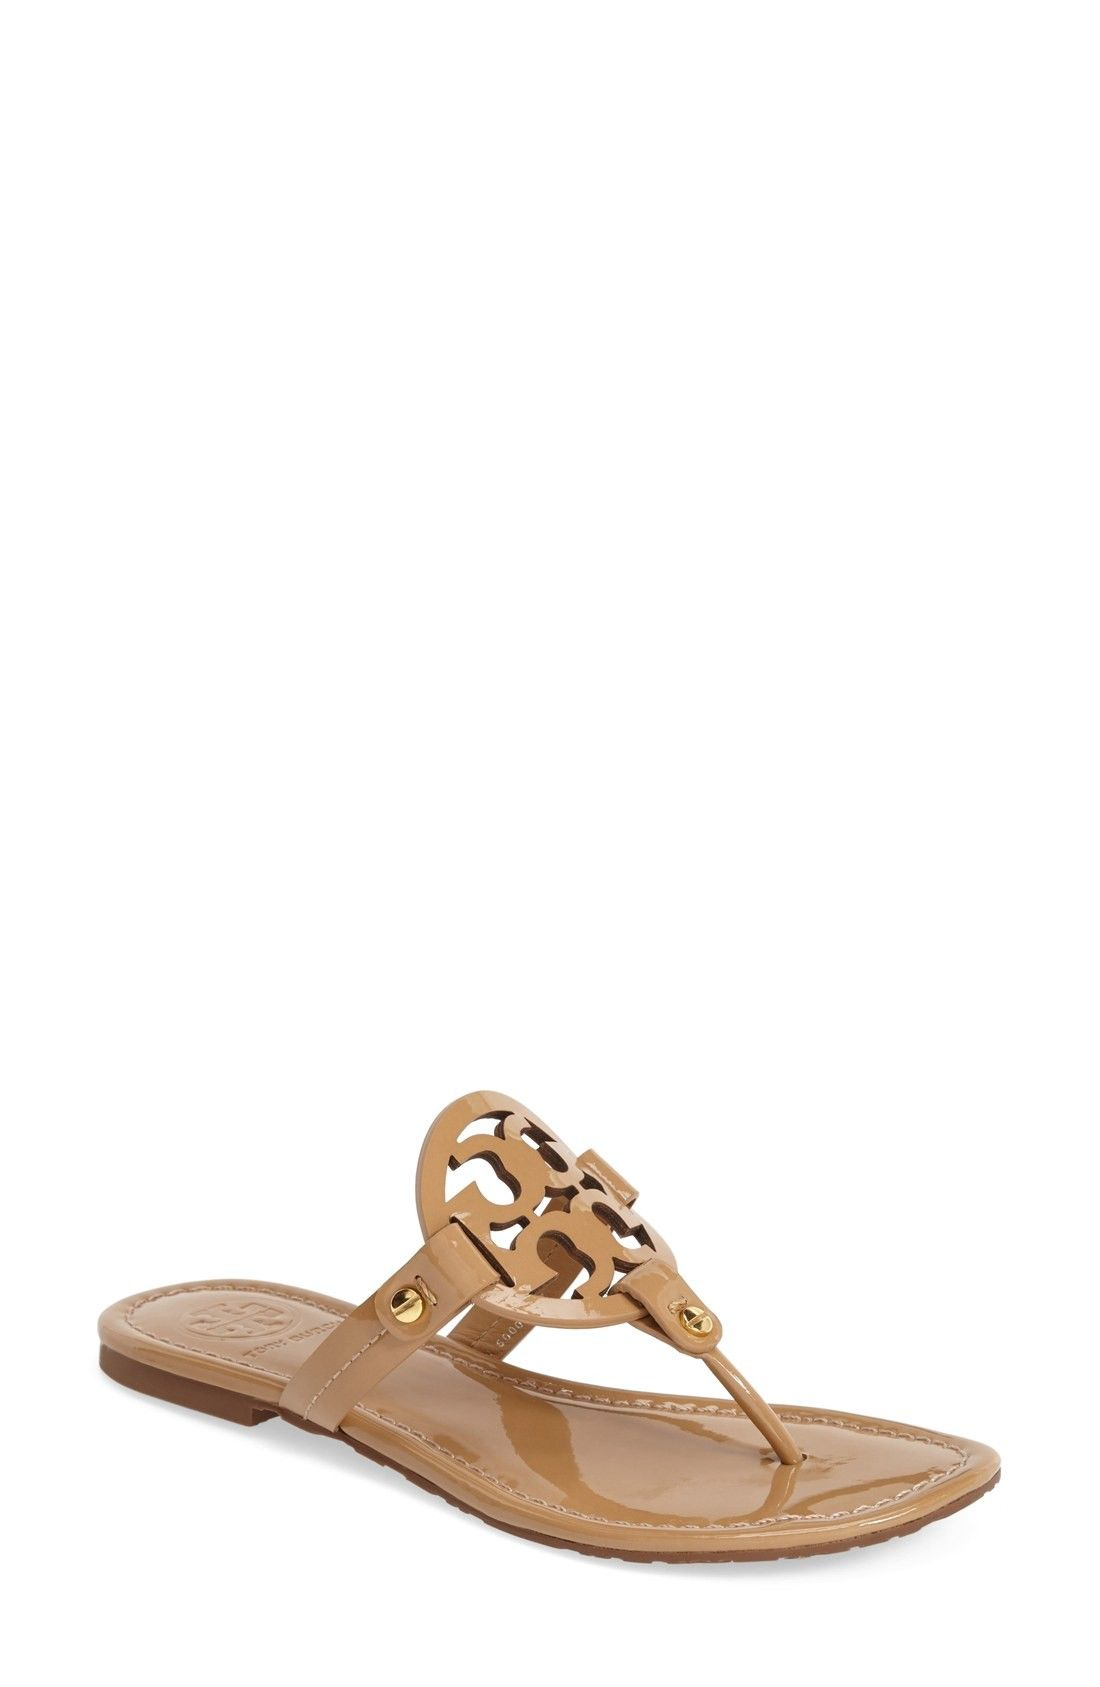 03f650e7c87cbf These classic Tory Burch flip flops come in a ton of colors from Nordstrom!